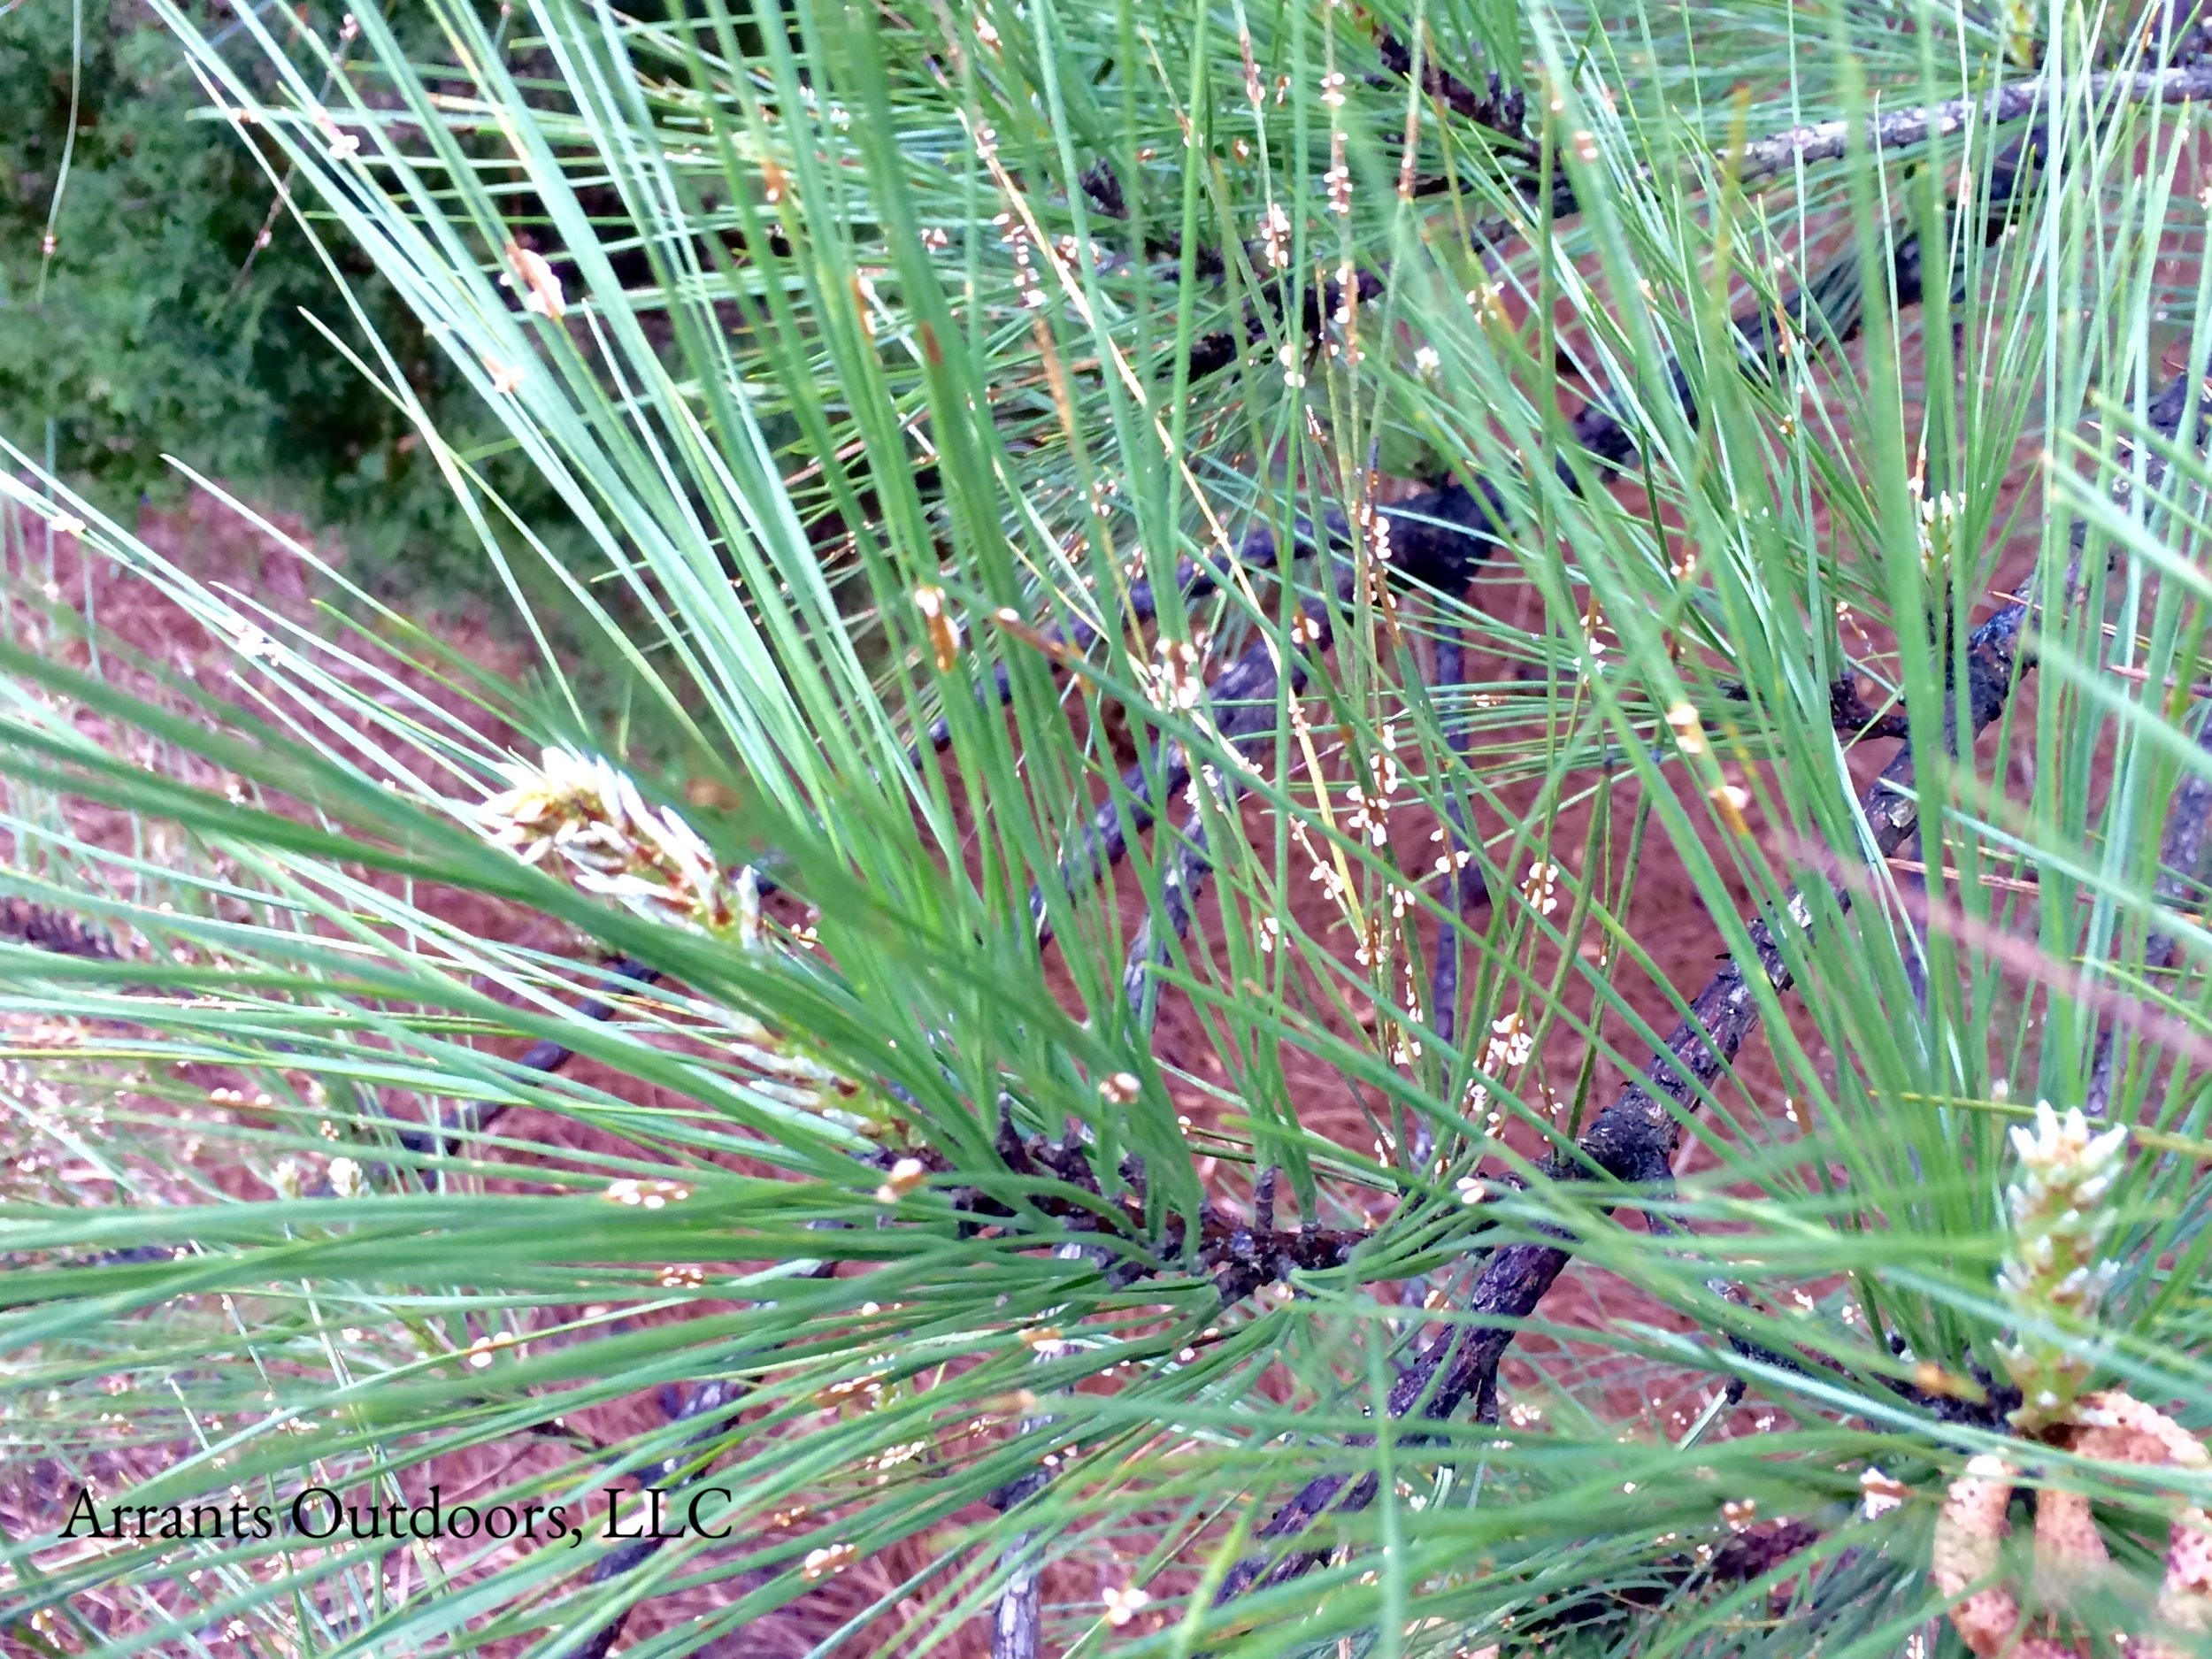 Pine Needle Rust (Coleosporium sp.) blisters found on the needles of Loblolly Pine (Pinus taeda).